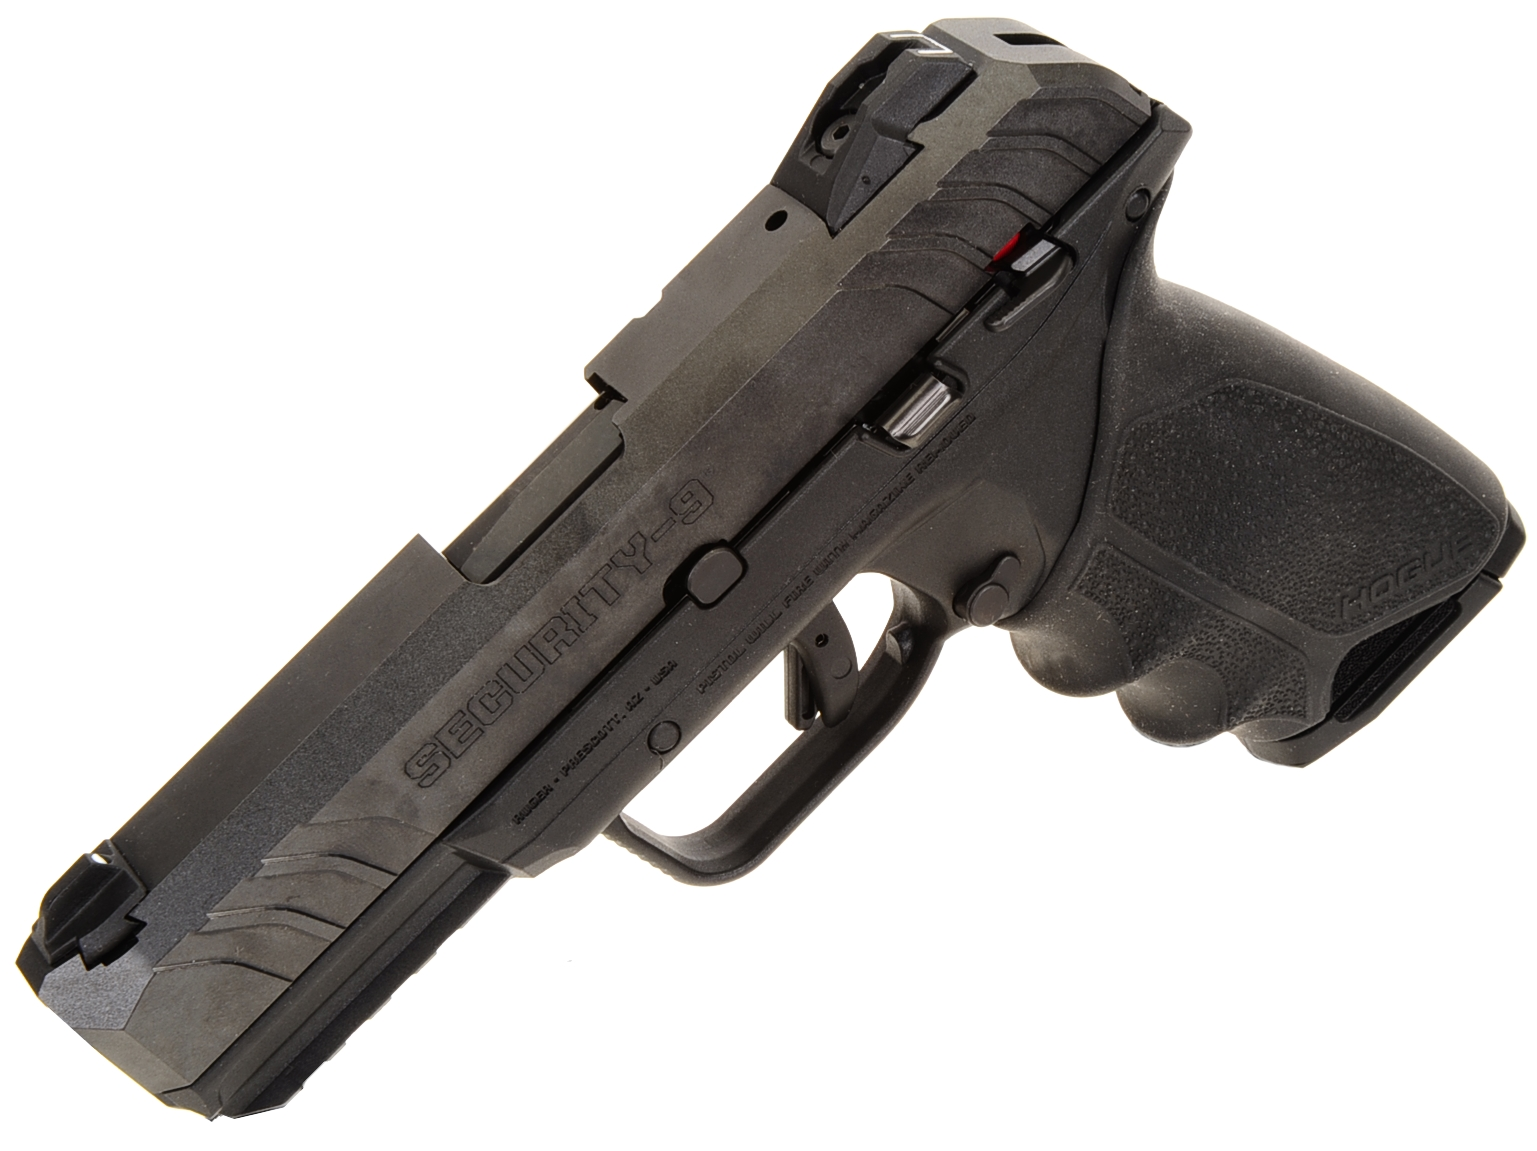 Ruger's Security-9 | Real Guns - A Firearm and related